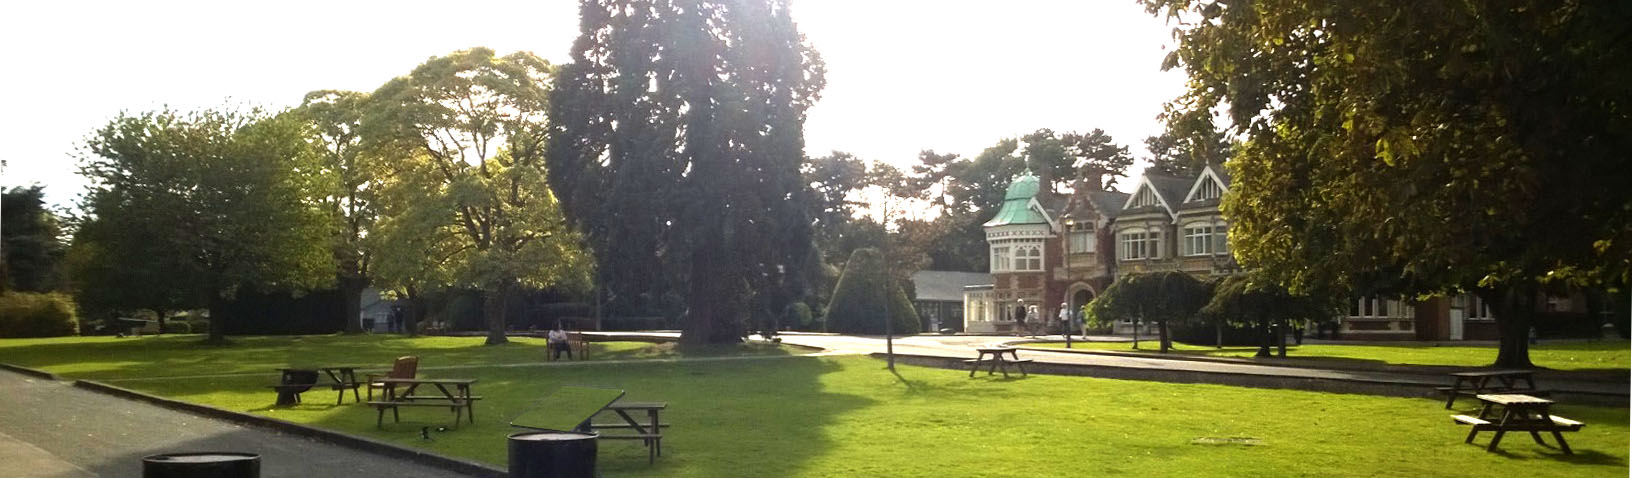 our software developer offices at bletchley park